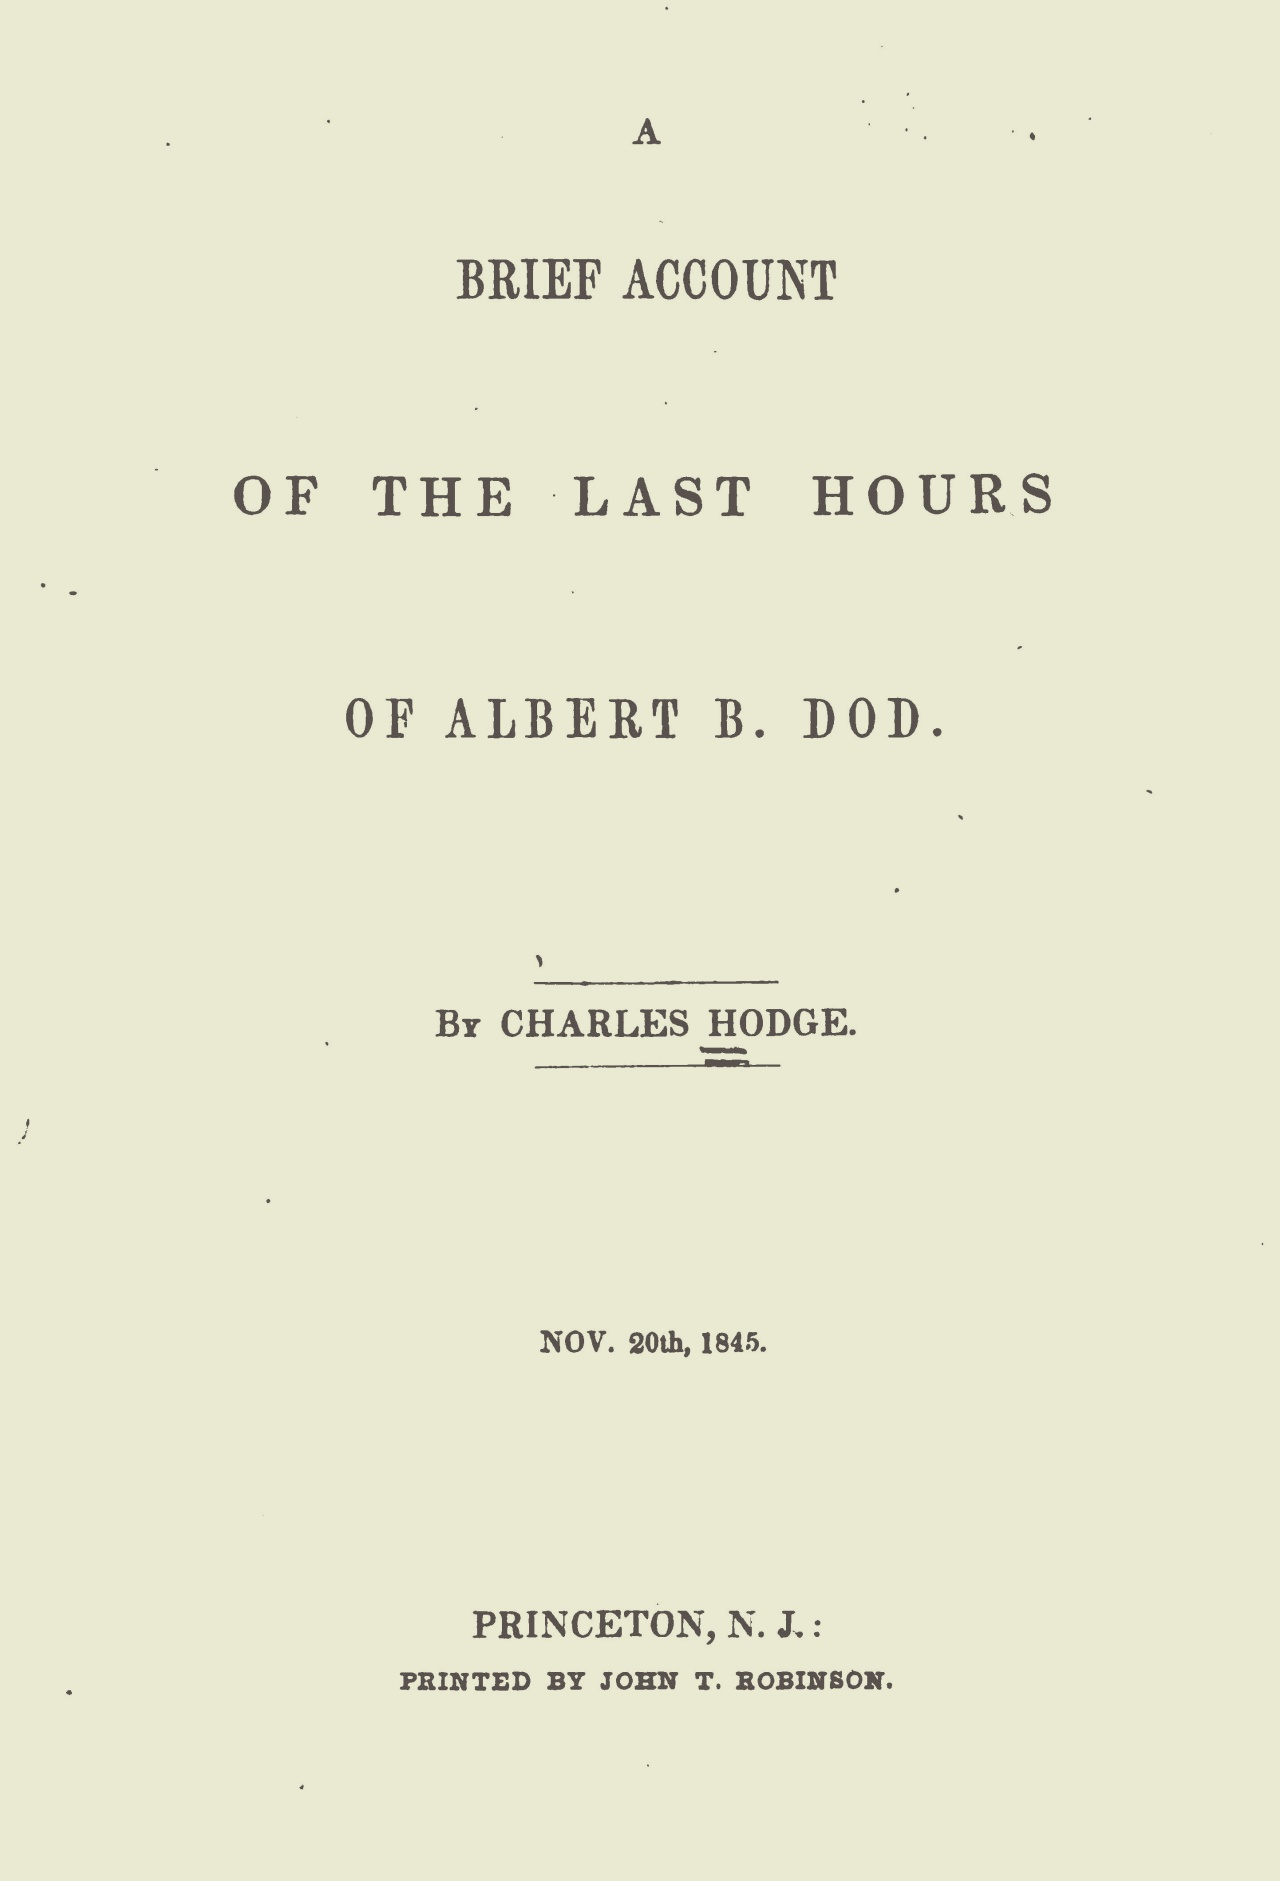 Hodge, Charles, A Brief Account of the Last Hours of Albert B. Dod Title Page.jpg